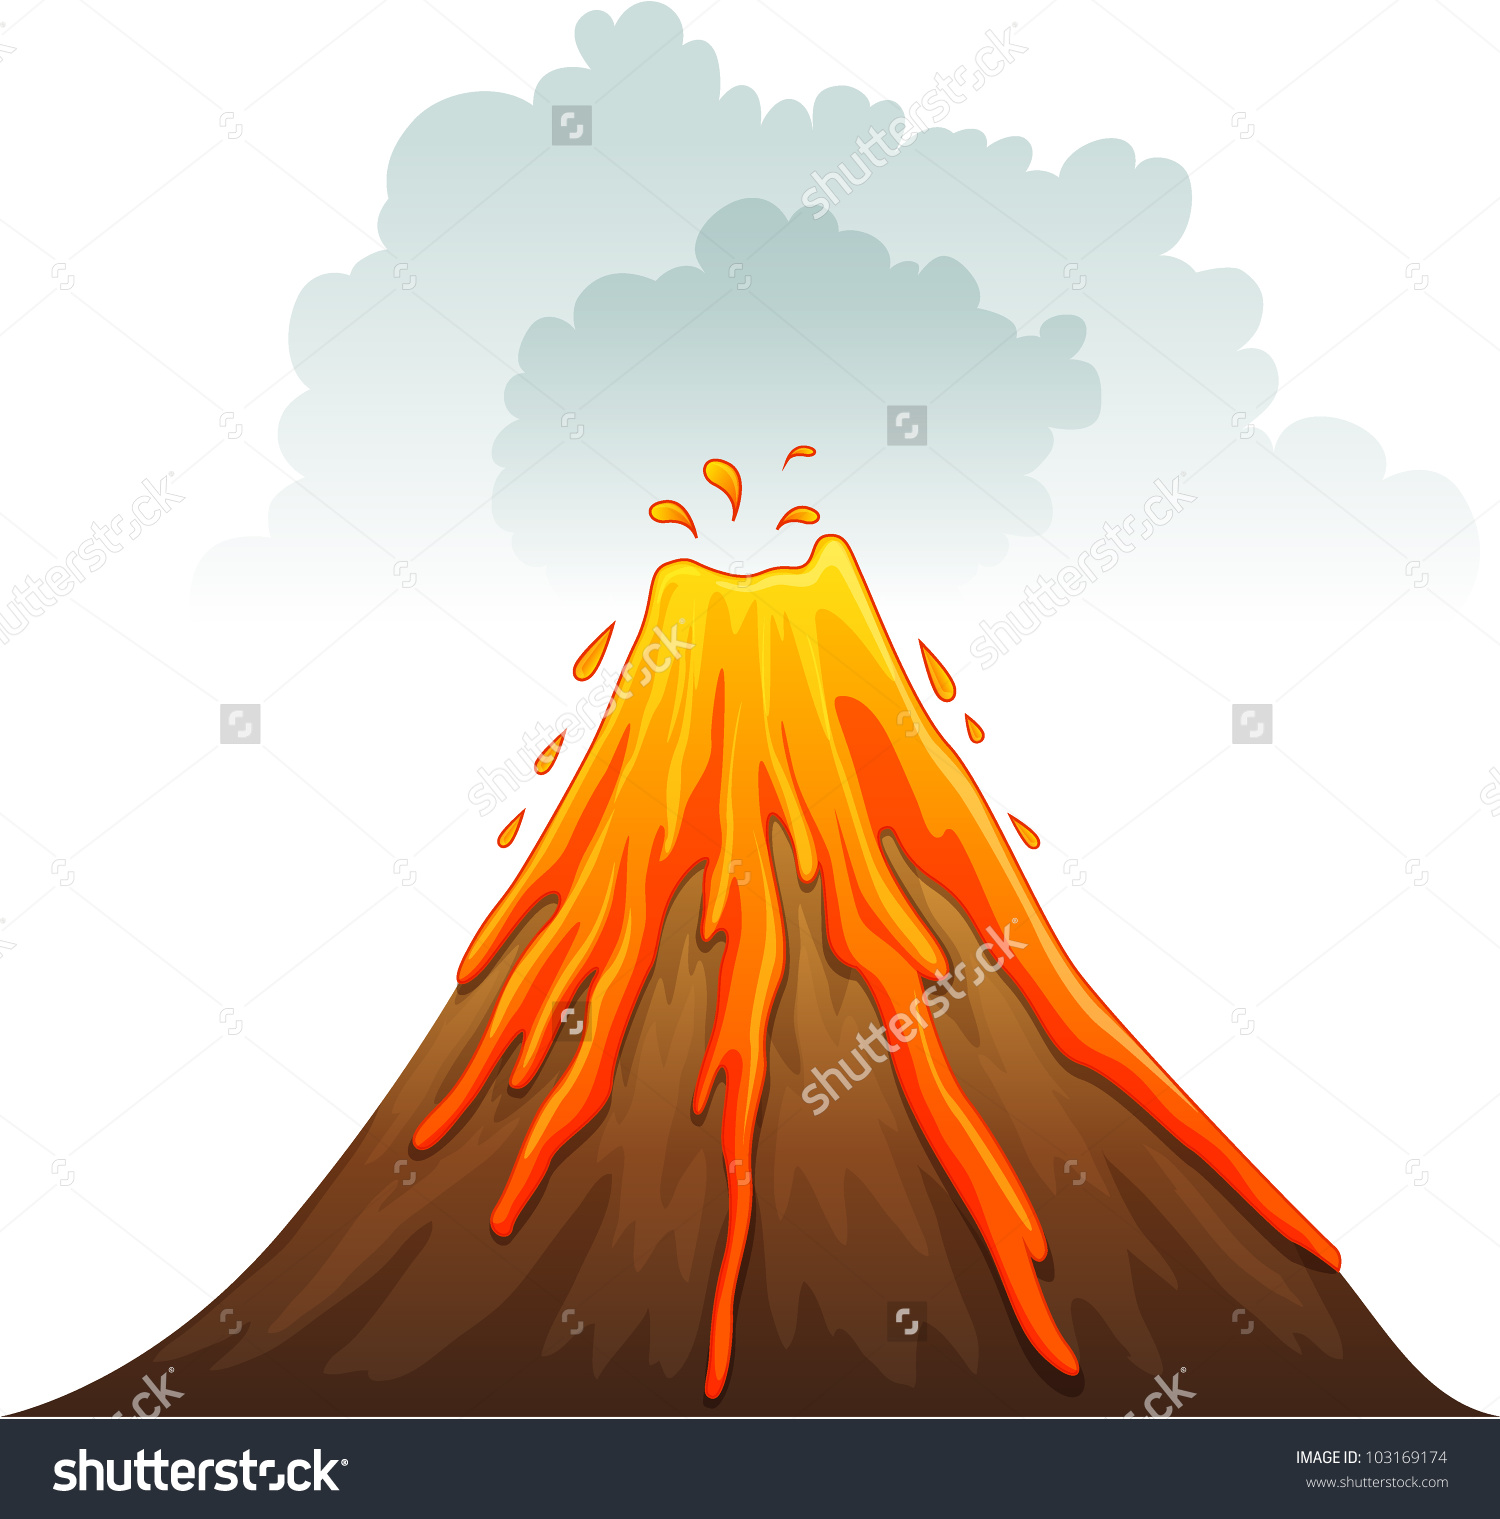 composite volcano diagram for basketball coaches court stratovolcano clipart clipground